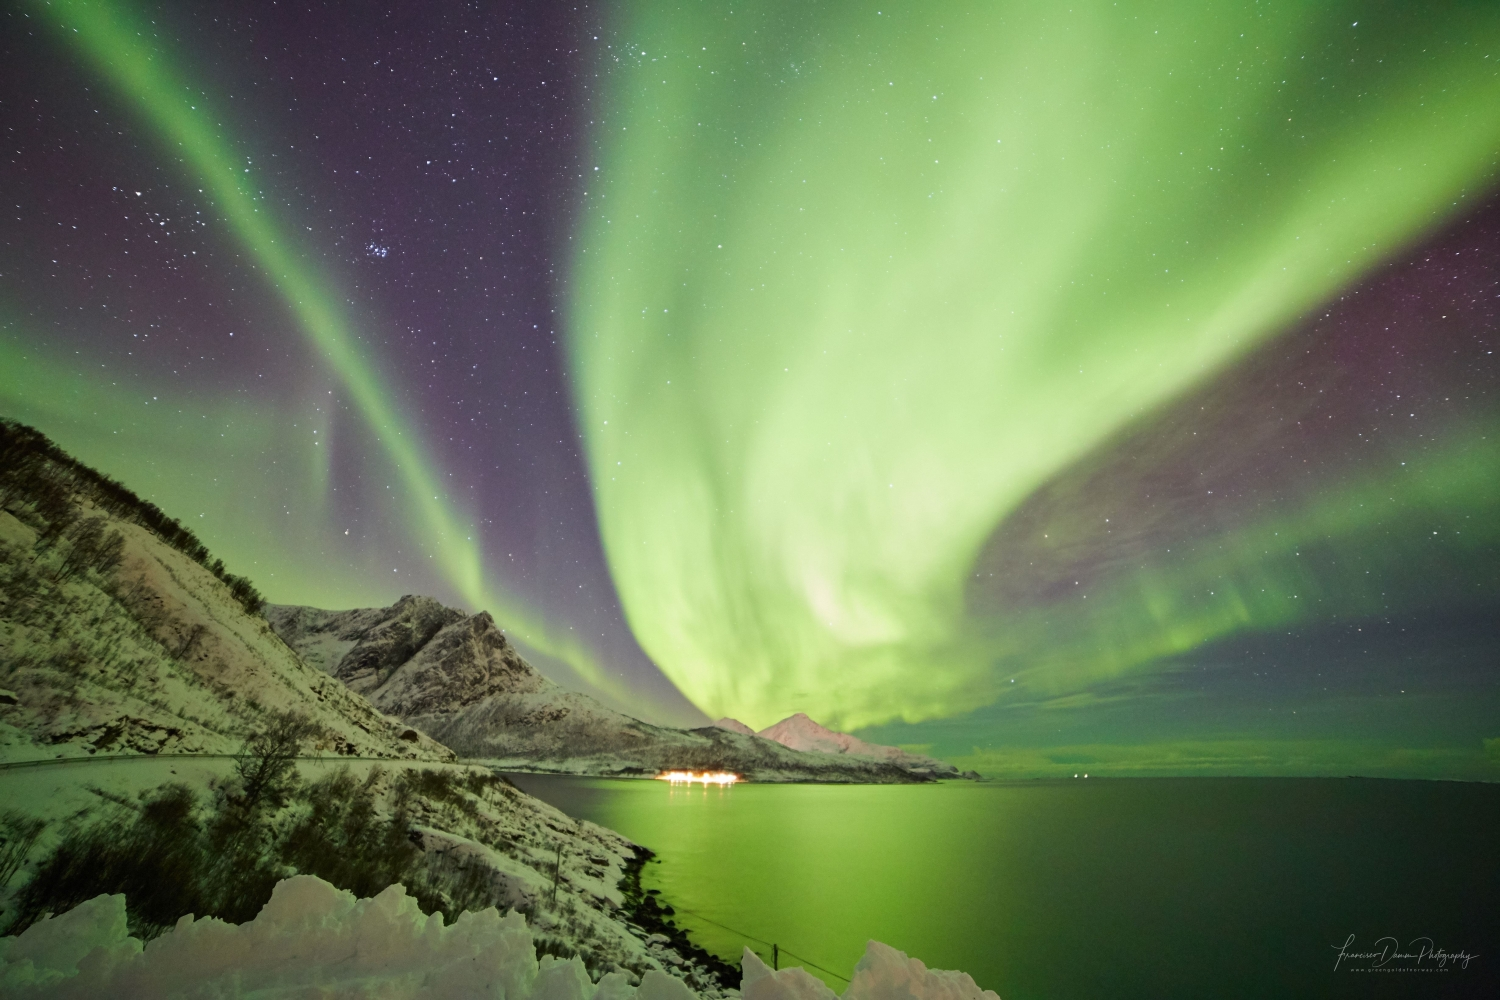 strong northern lights covering the whole sky over mountains and sea